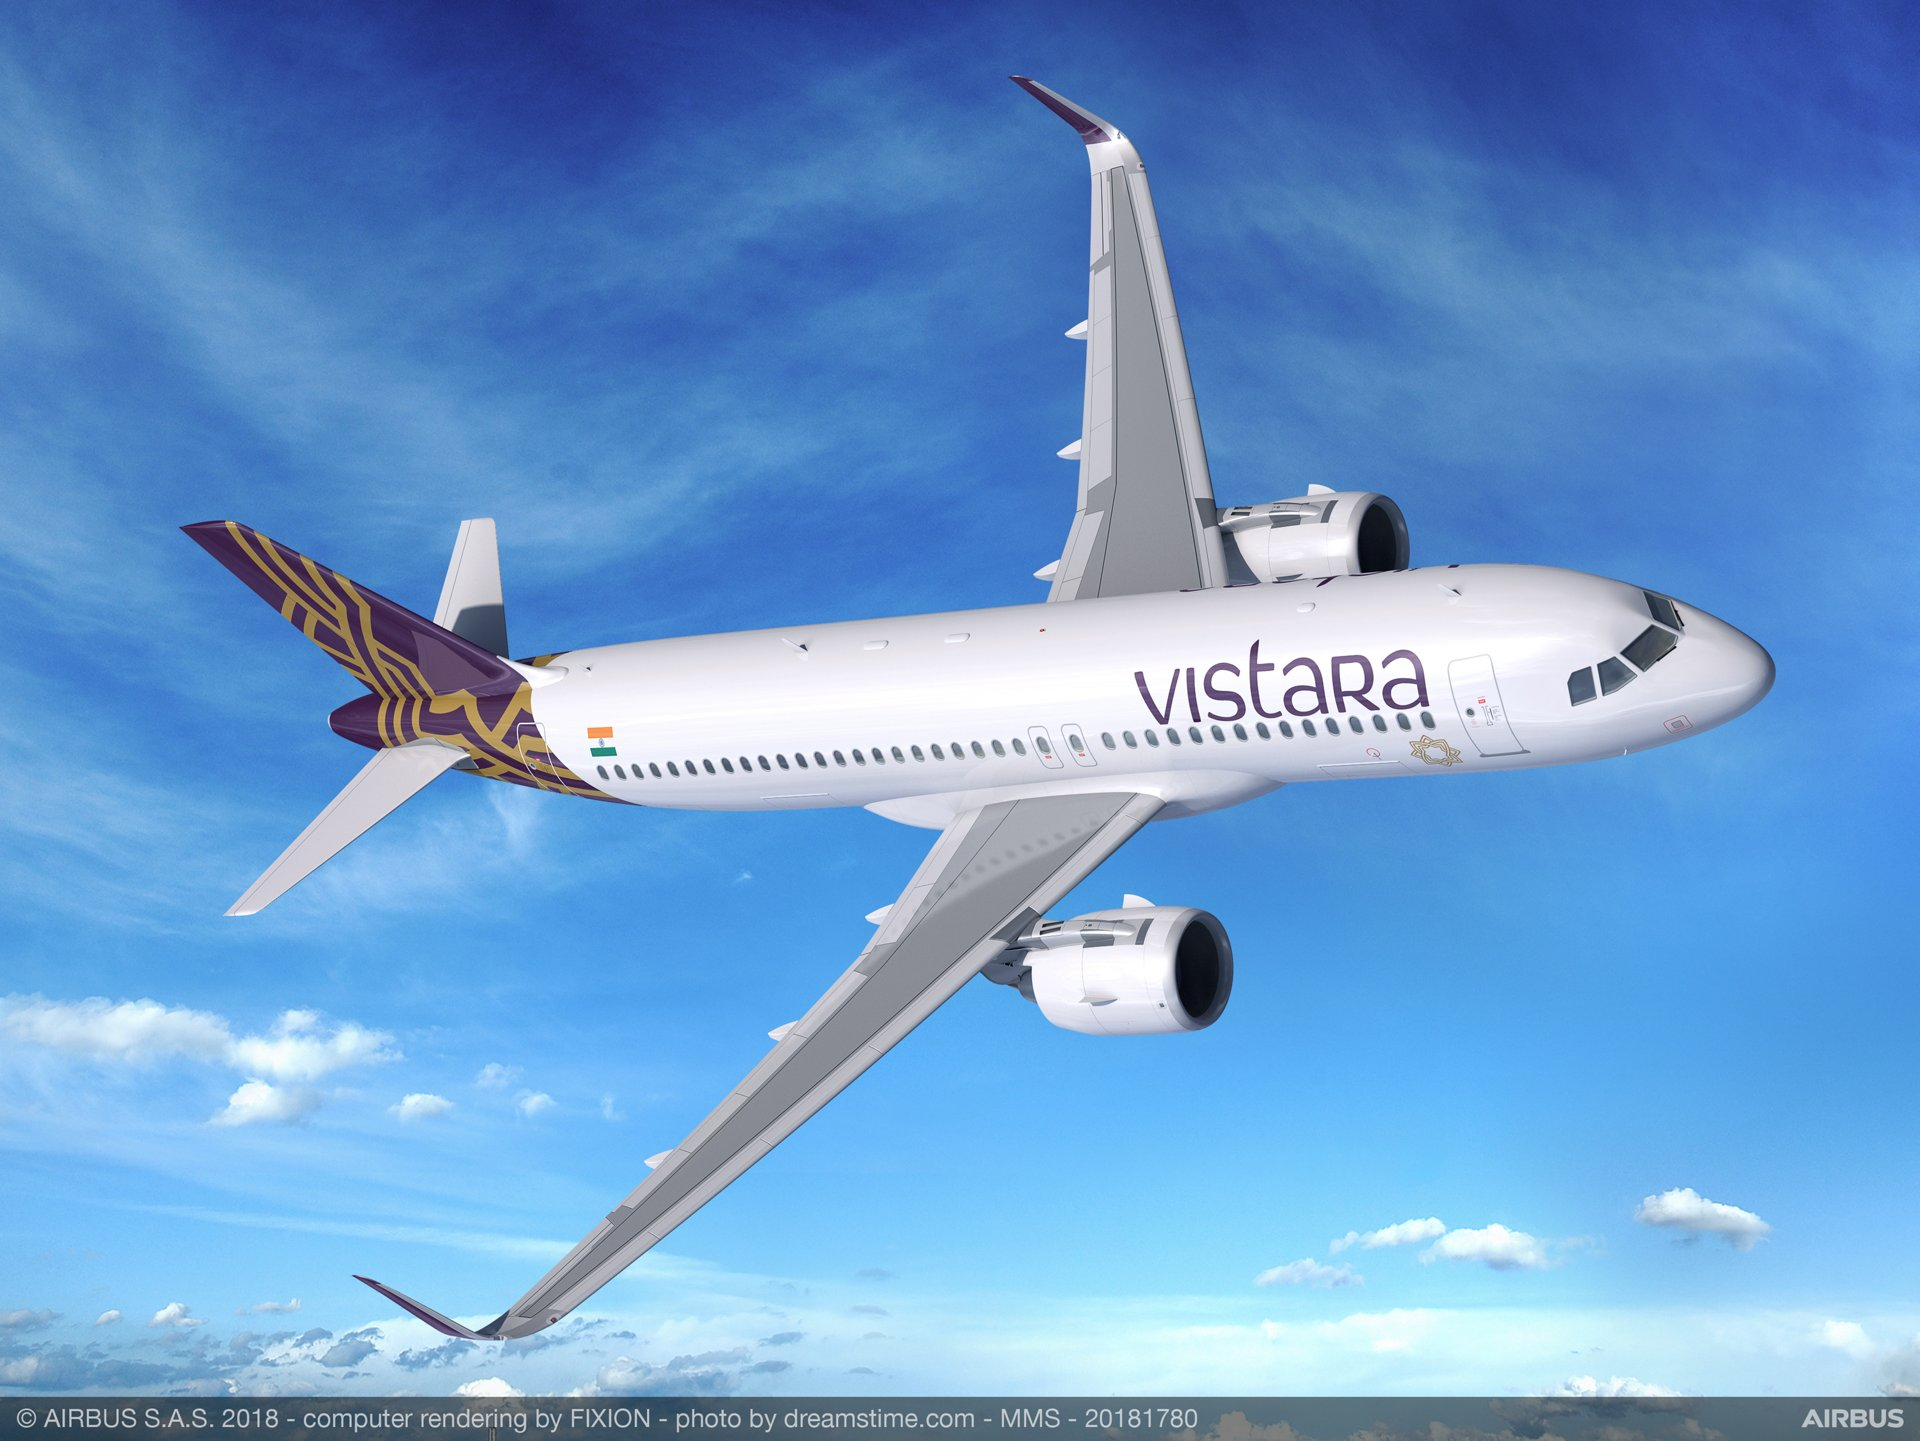 New Delhi-based carrier VISTARA signed a letter of intent for 13 A320neo aircraft, which will join its existing portfolio of 21 Airbus jetliners